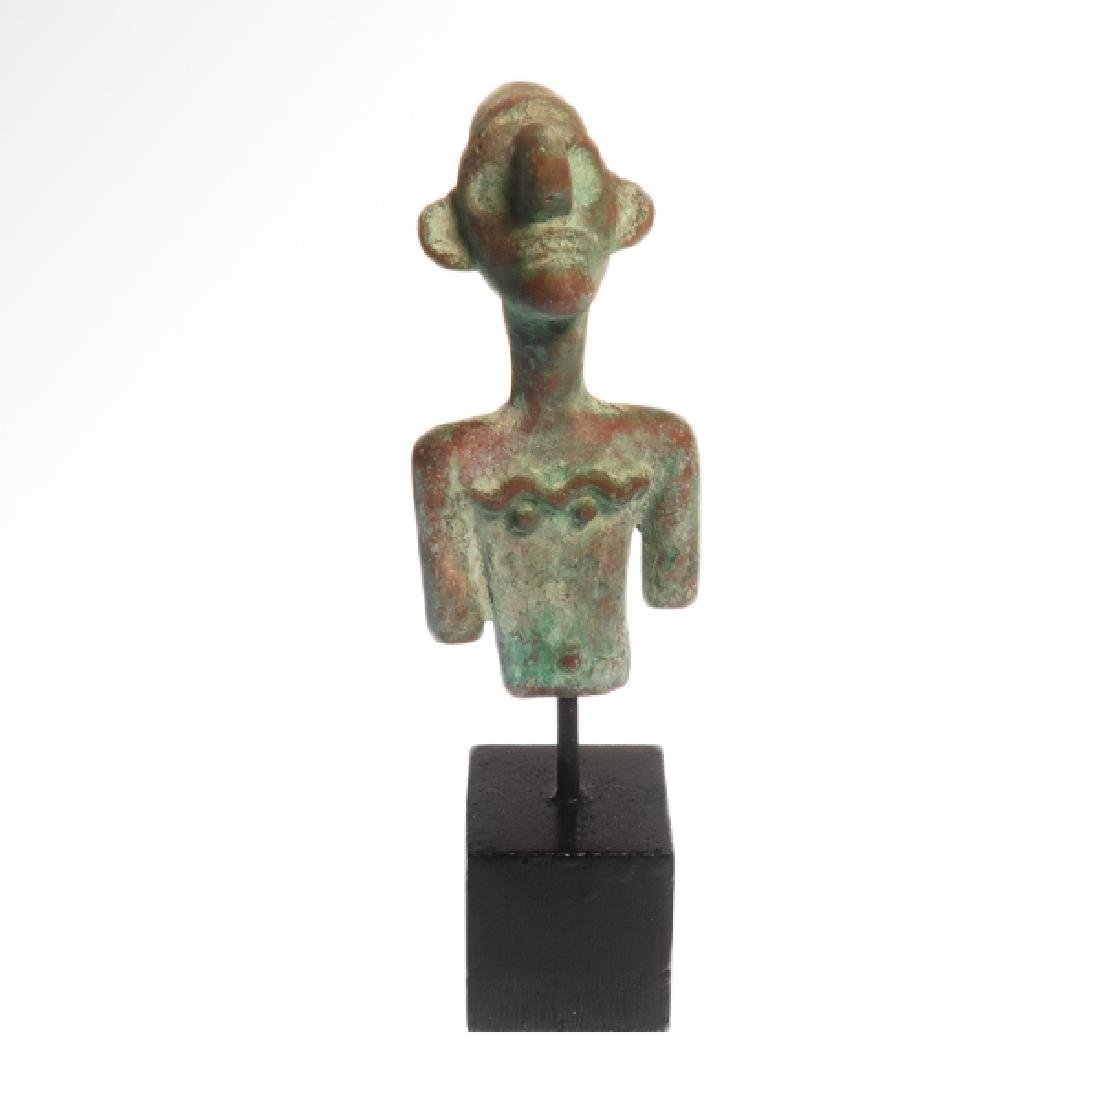 Canaanite Bust of a Deity, c. 2nd Millennium BC - 7